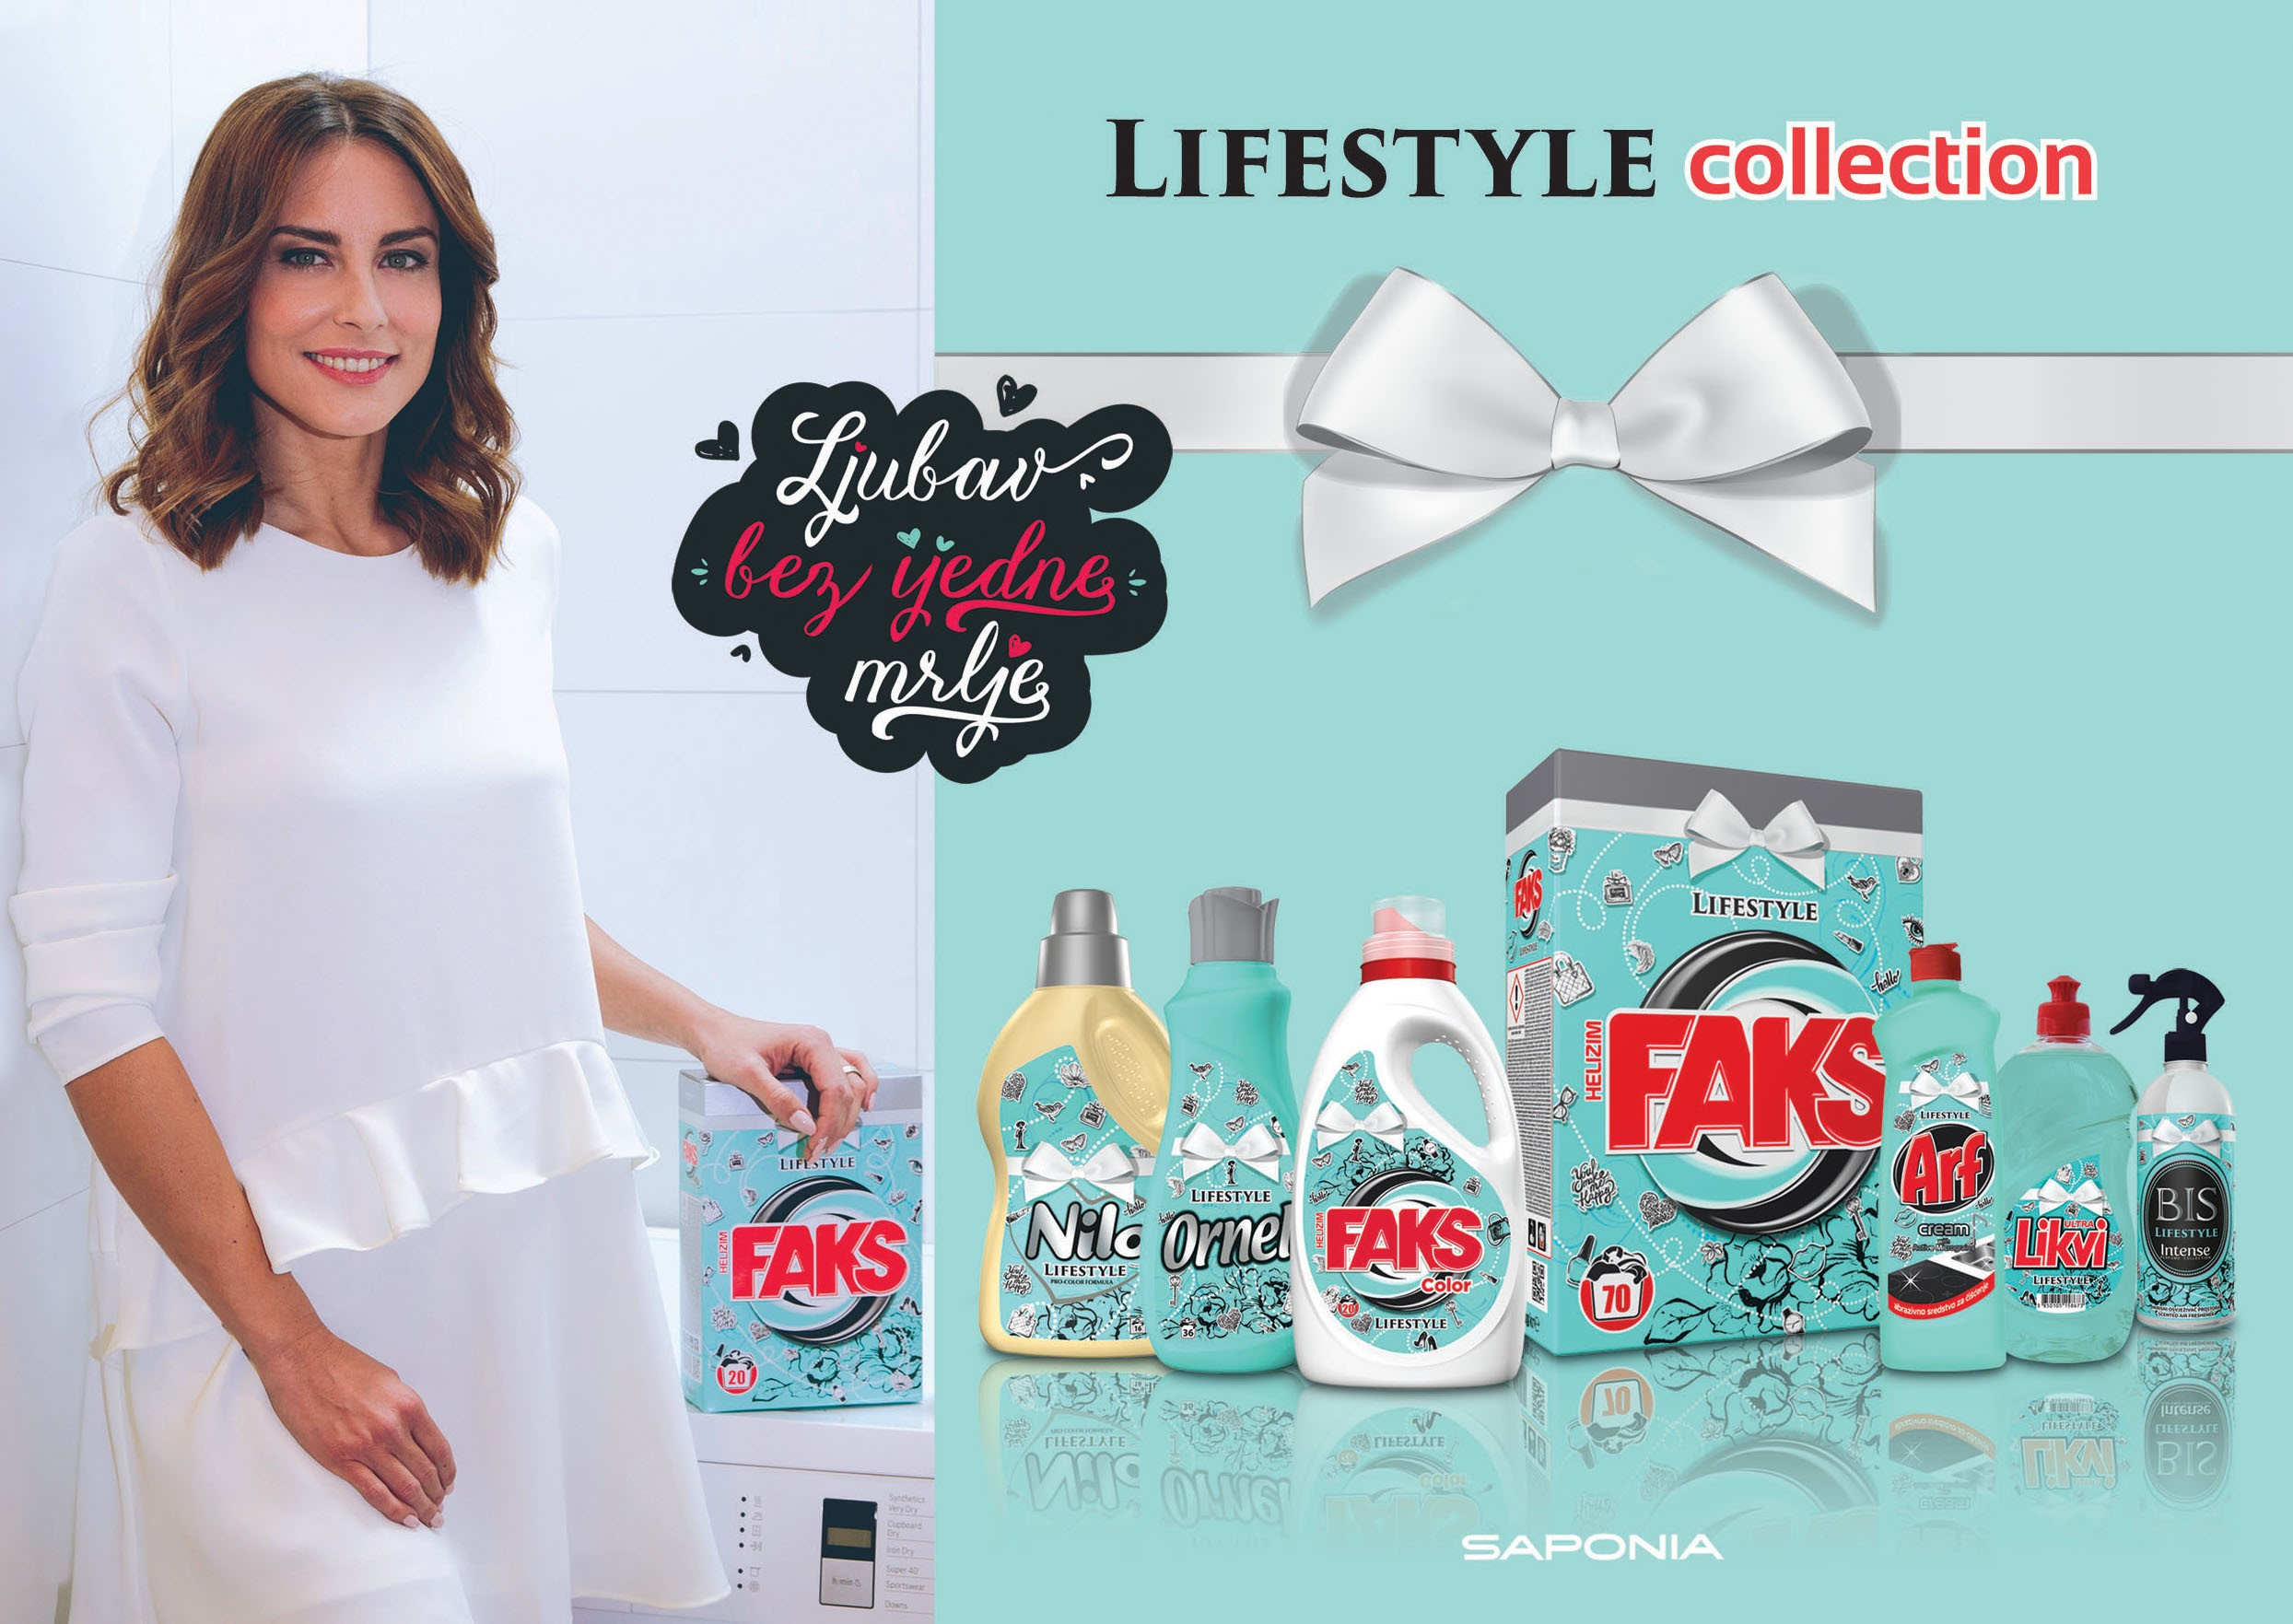 Lifestyle collection